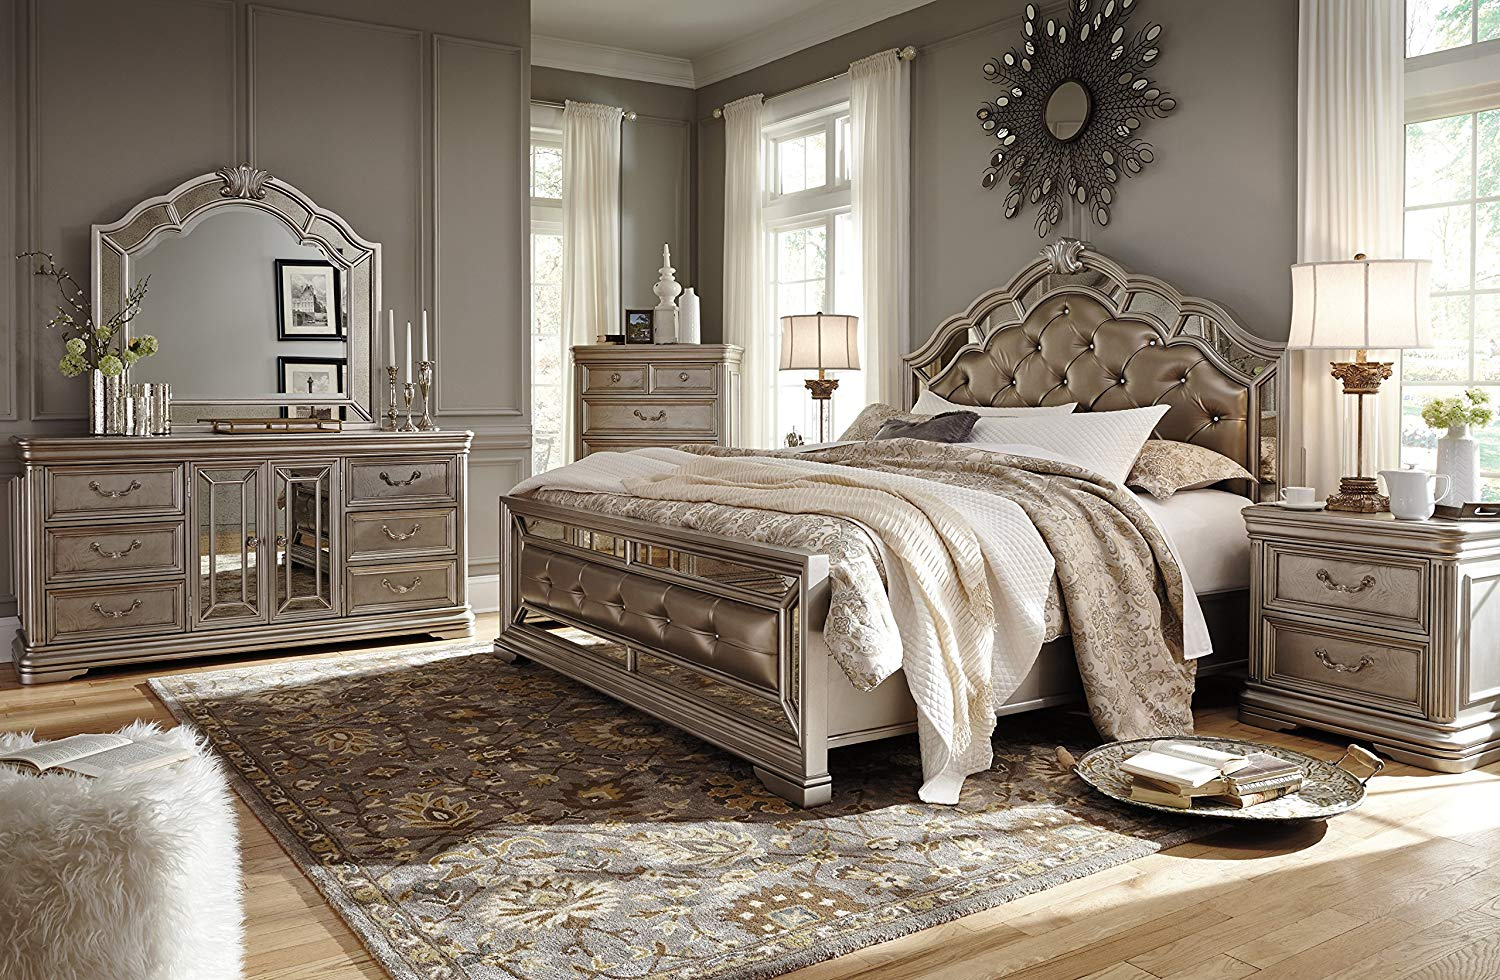 Best bedroom set for modern bedroom idea